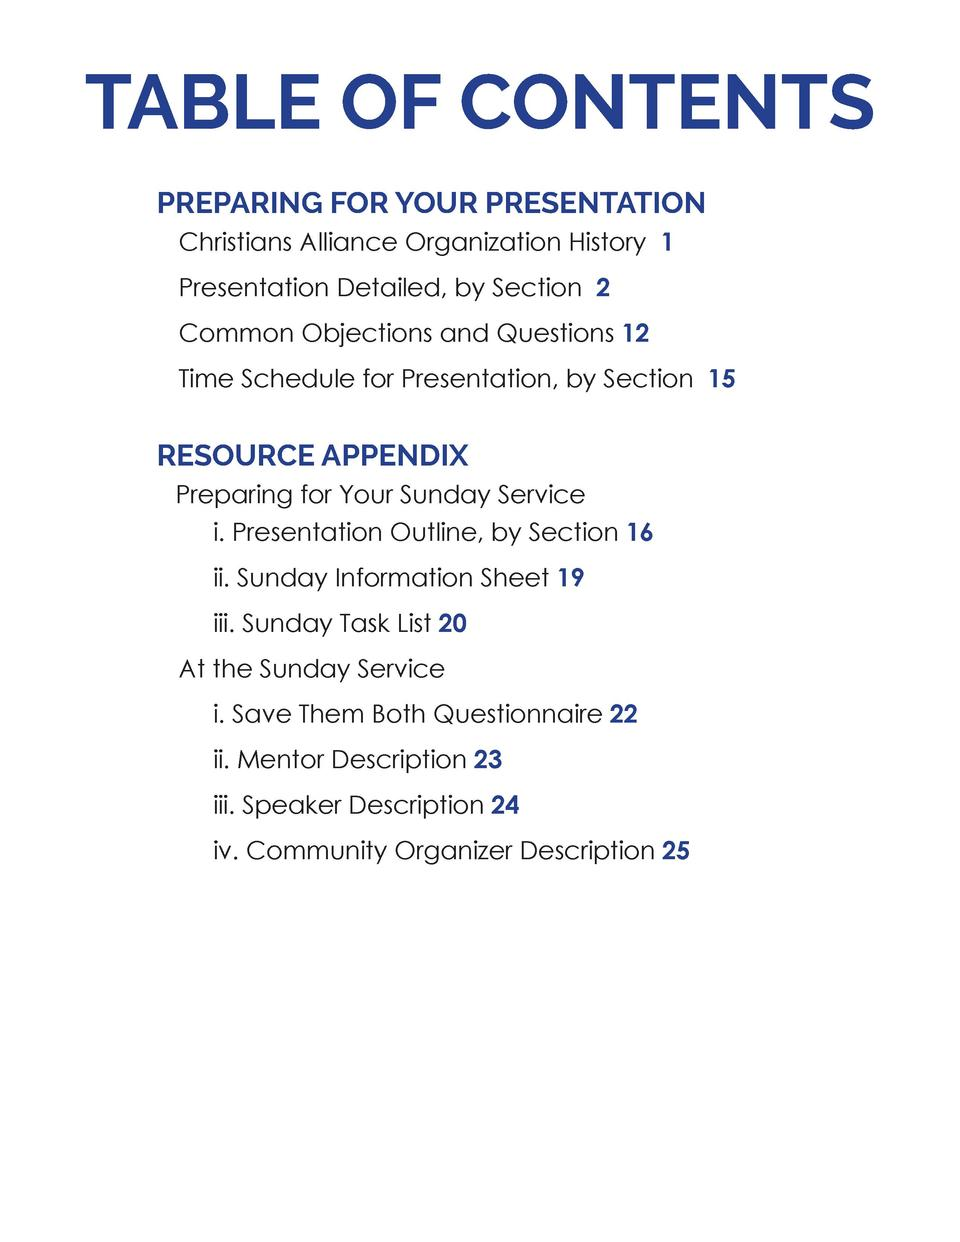 TABLE OF CONTENTS PREPARING FOR YOUR PRESENTATION Christians Alliance Organization History 1 Presentation Detailed, by Sec...